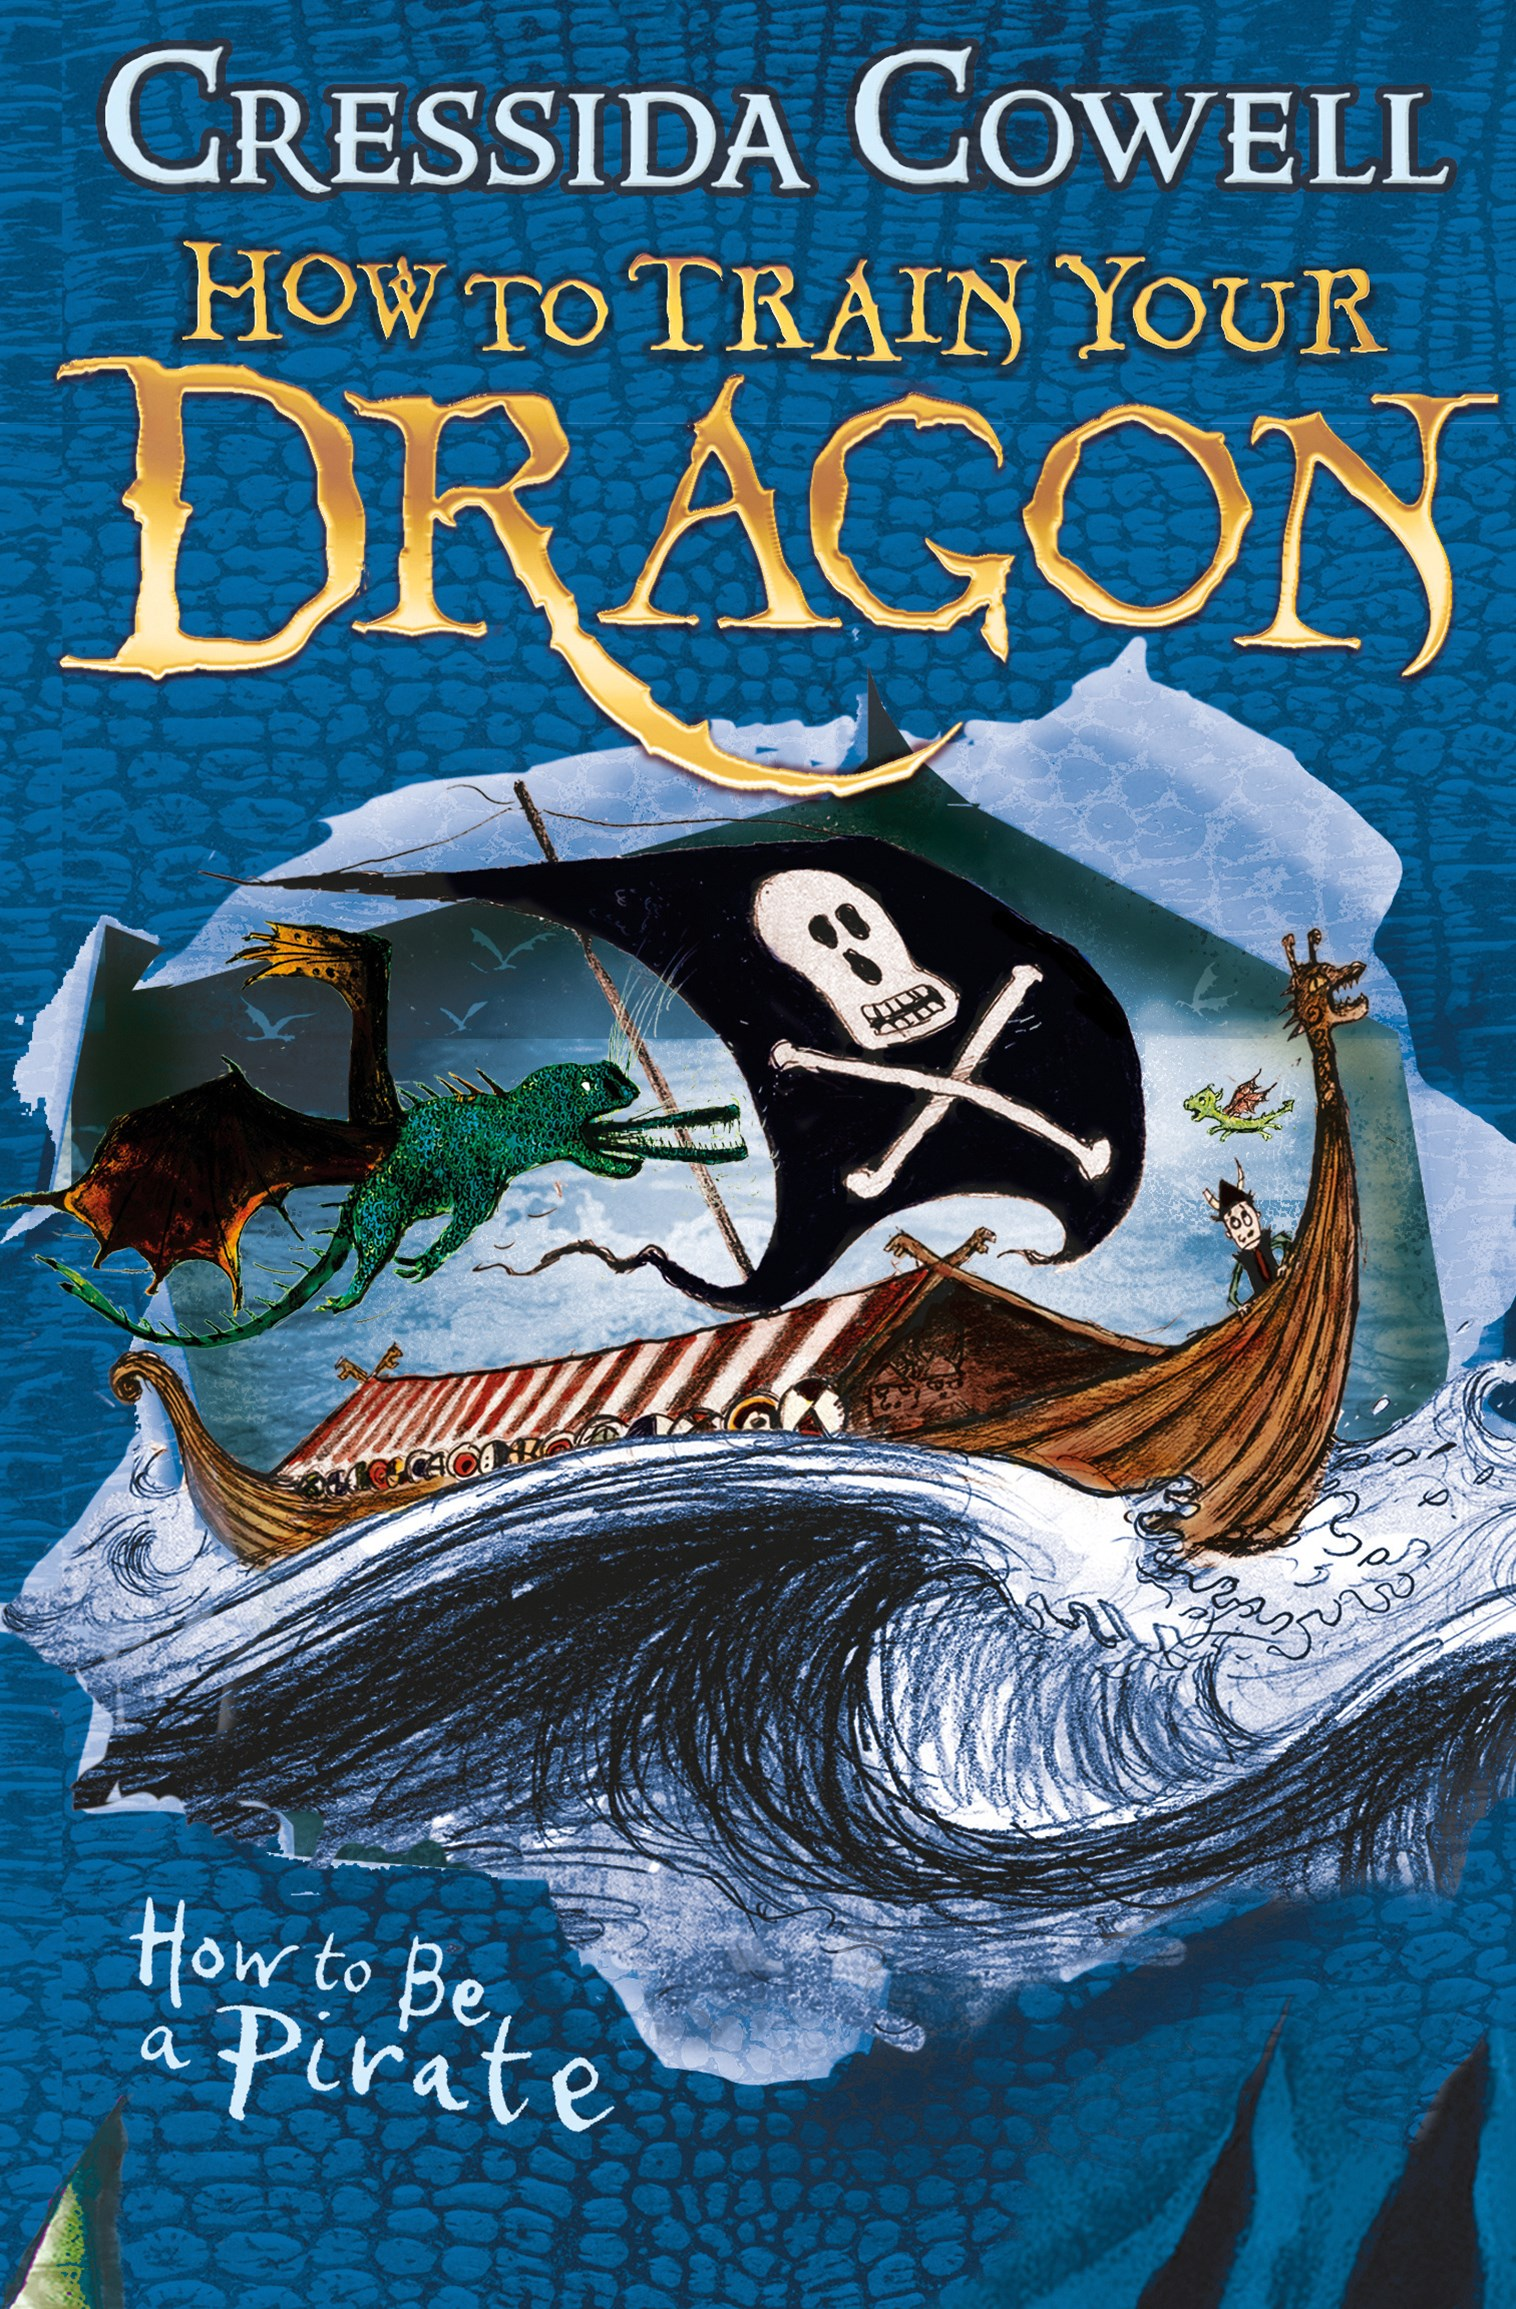 How to Be a Pirate (How to Train Your Dragon Book 2)